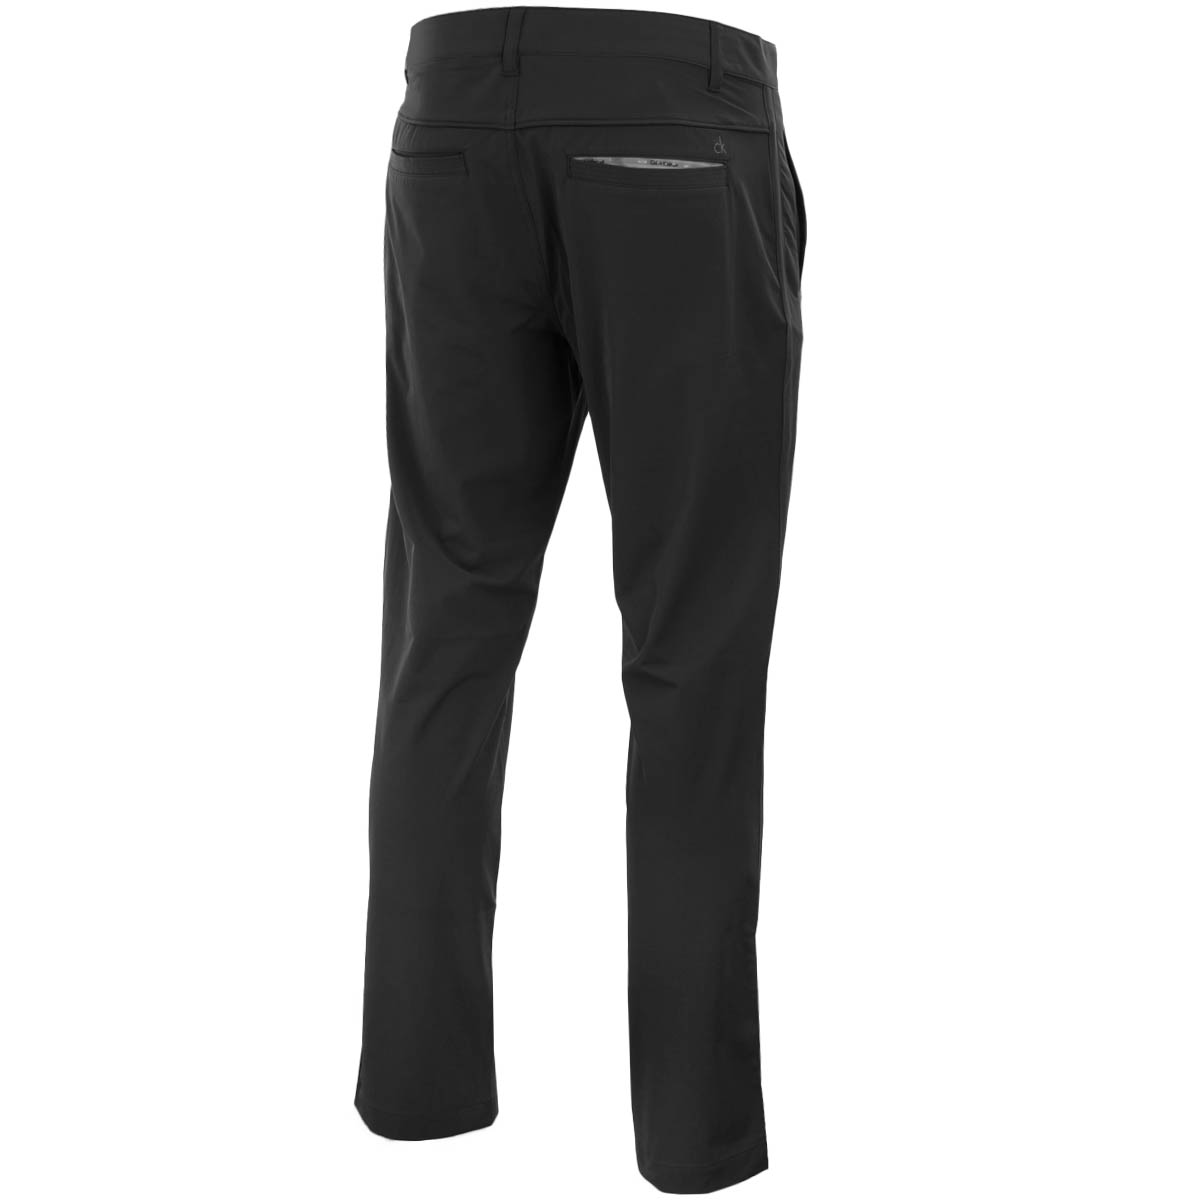 Calvin-Klein-Golf-Mens-CK-Bionic-Stretch-Trousers-Water-Resistant-53-OFF-RRP thumbnail 3